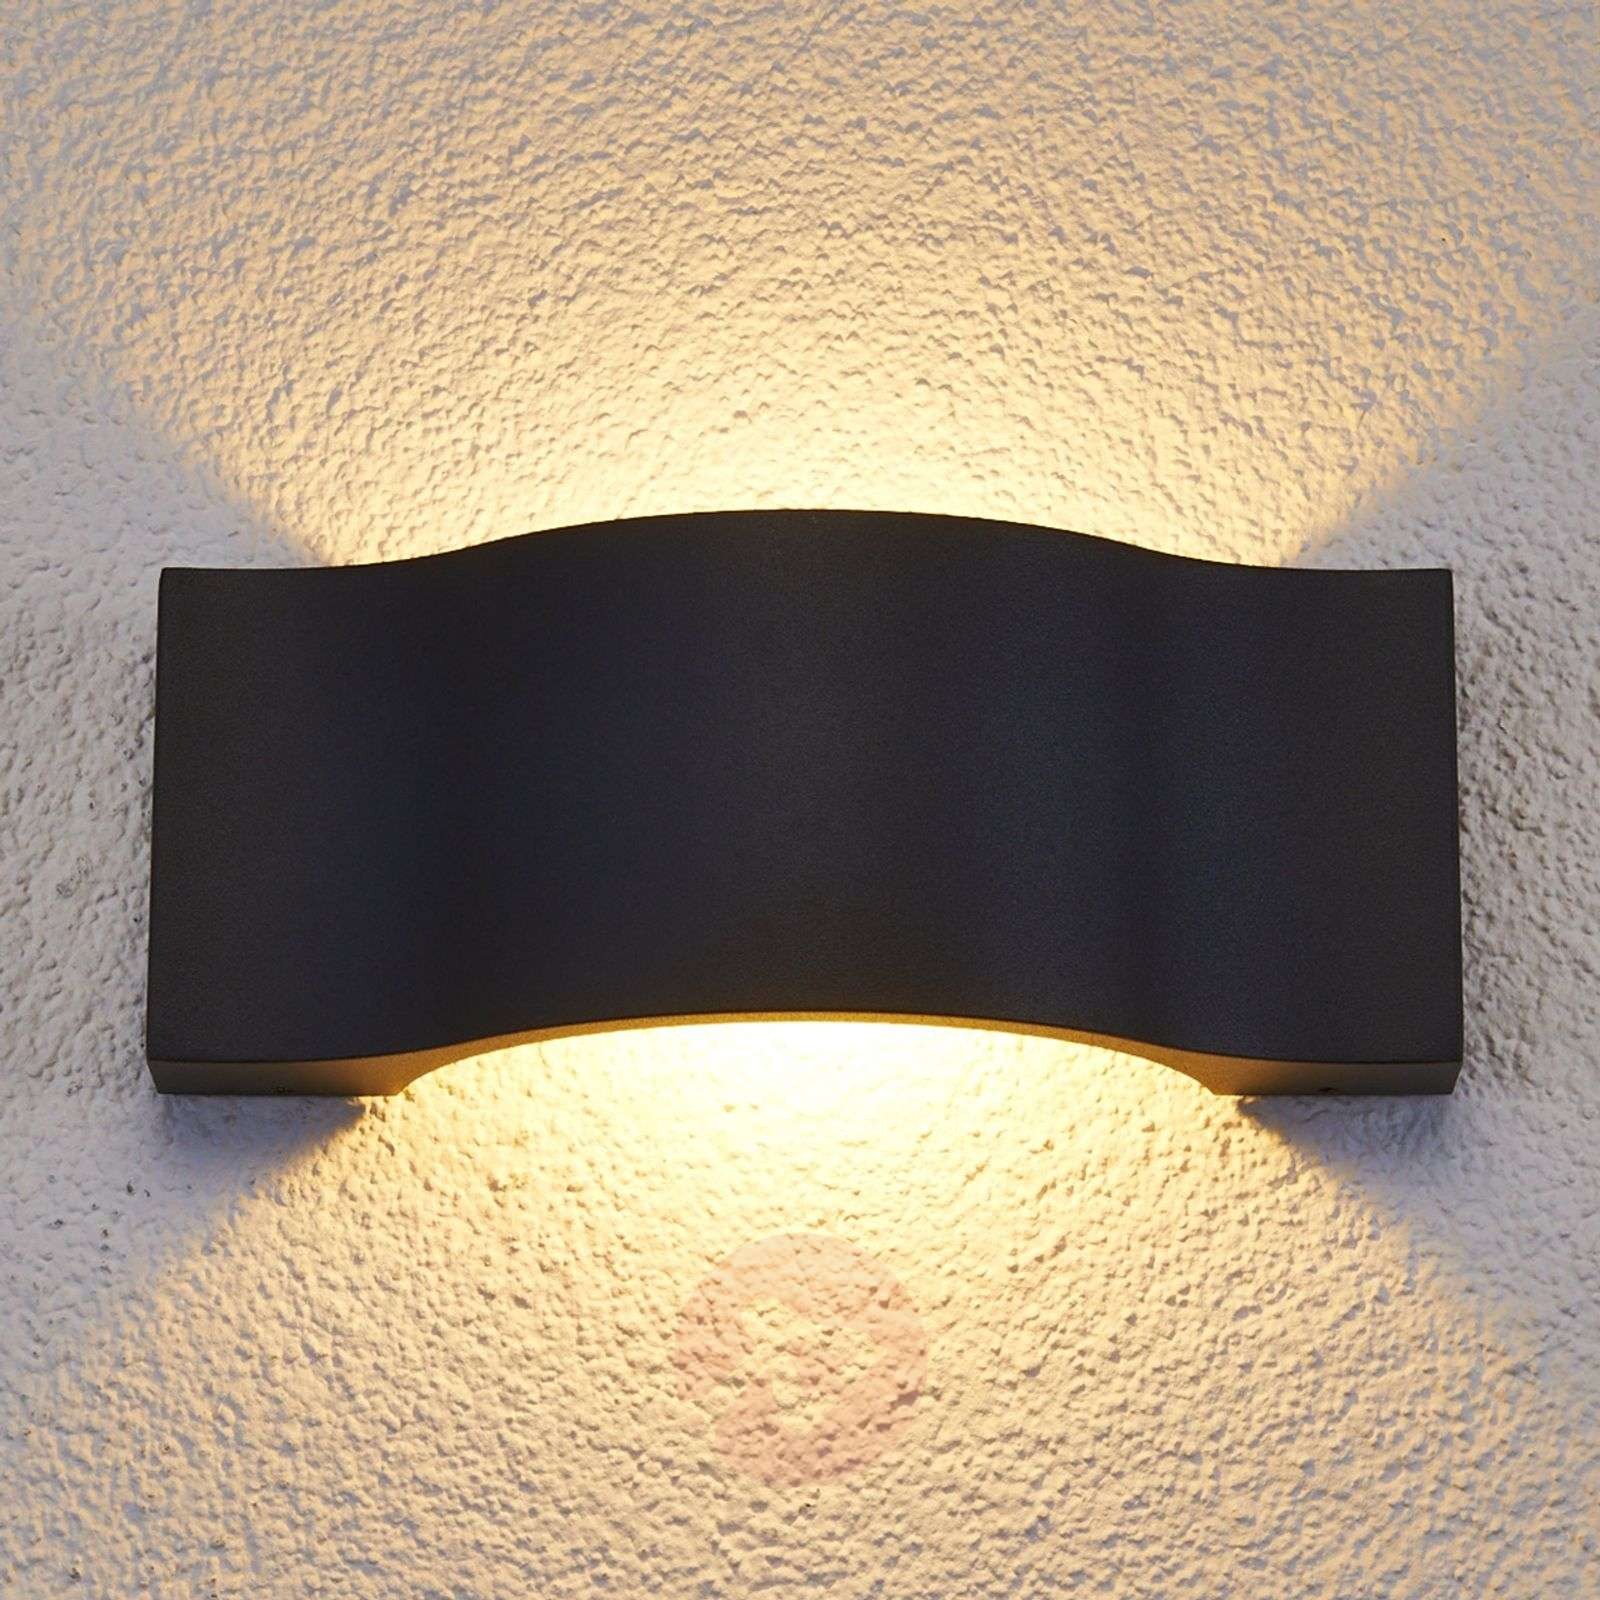 Buy LED Outdoor Wall Lights from Lights.co.uk